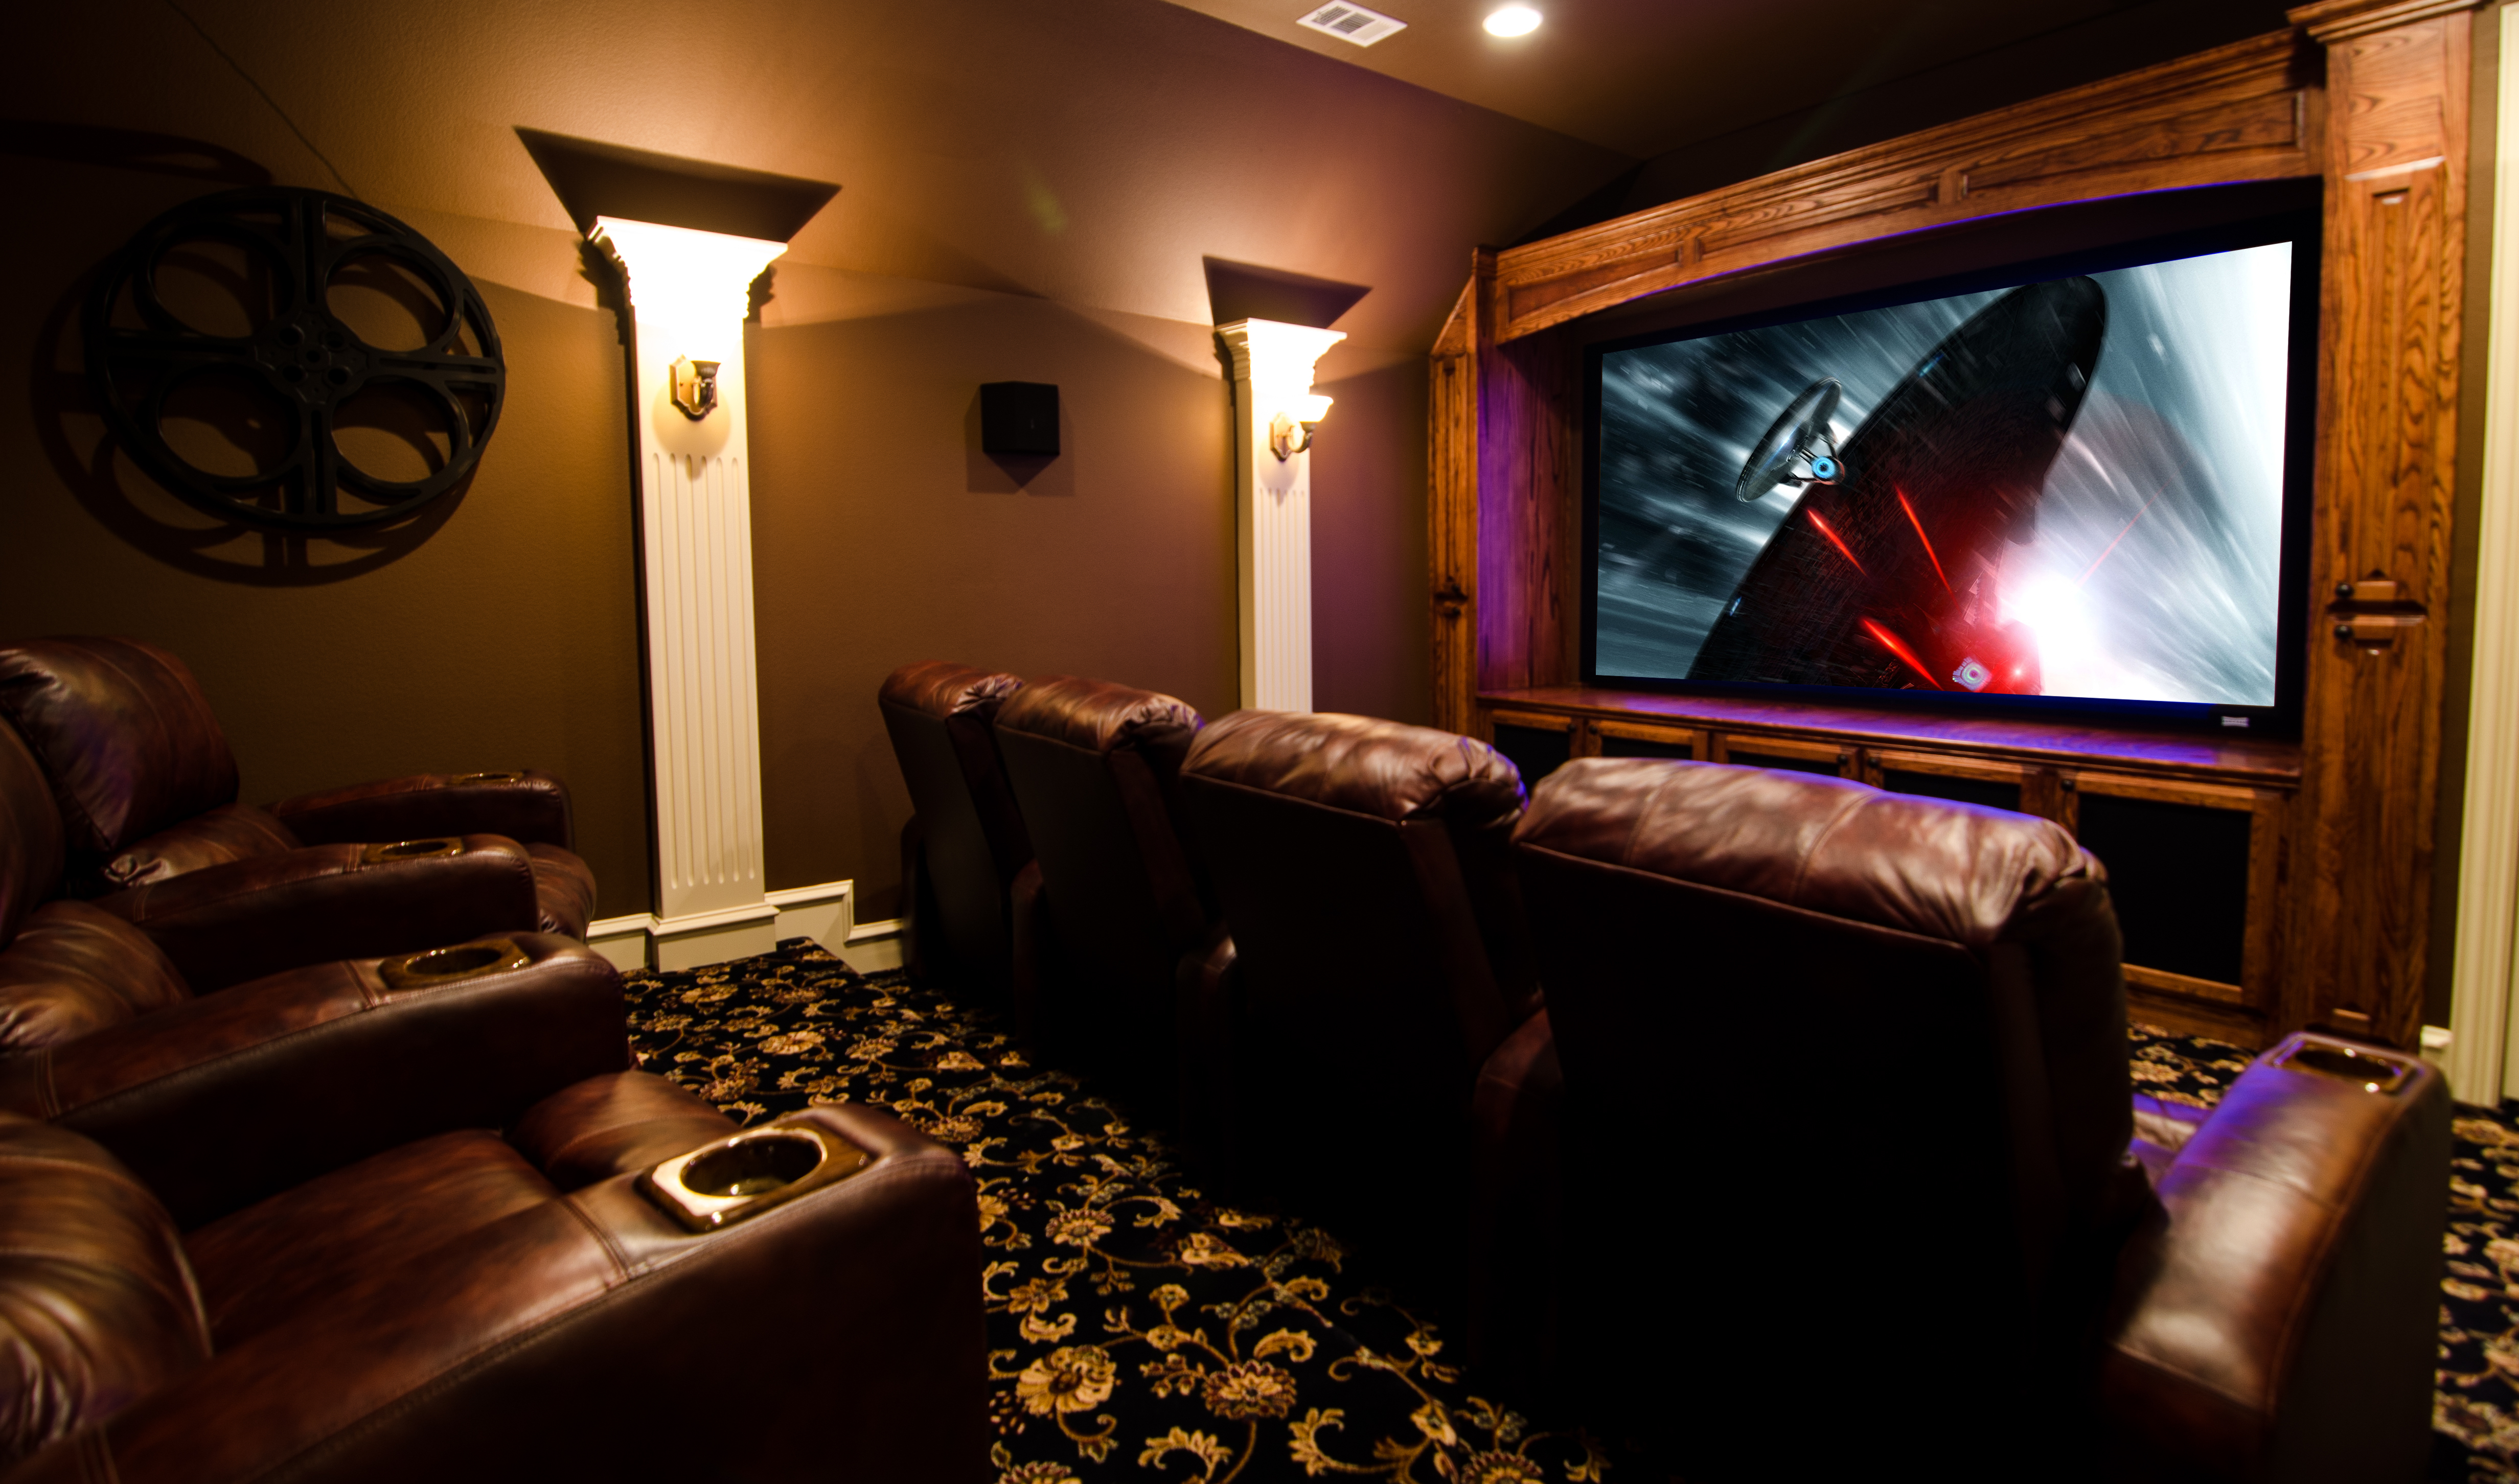 Home theater design tx 28 images cave home theater dallas by wood mill best home theater - Home theater design dallas inspired ...